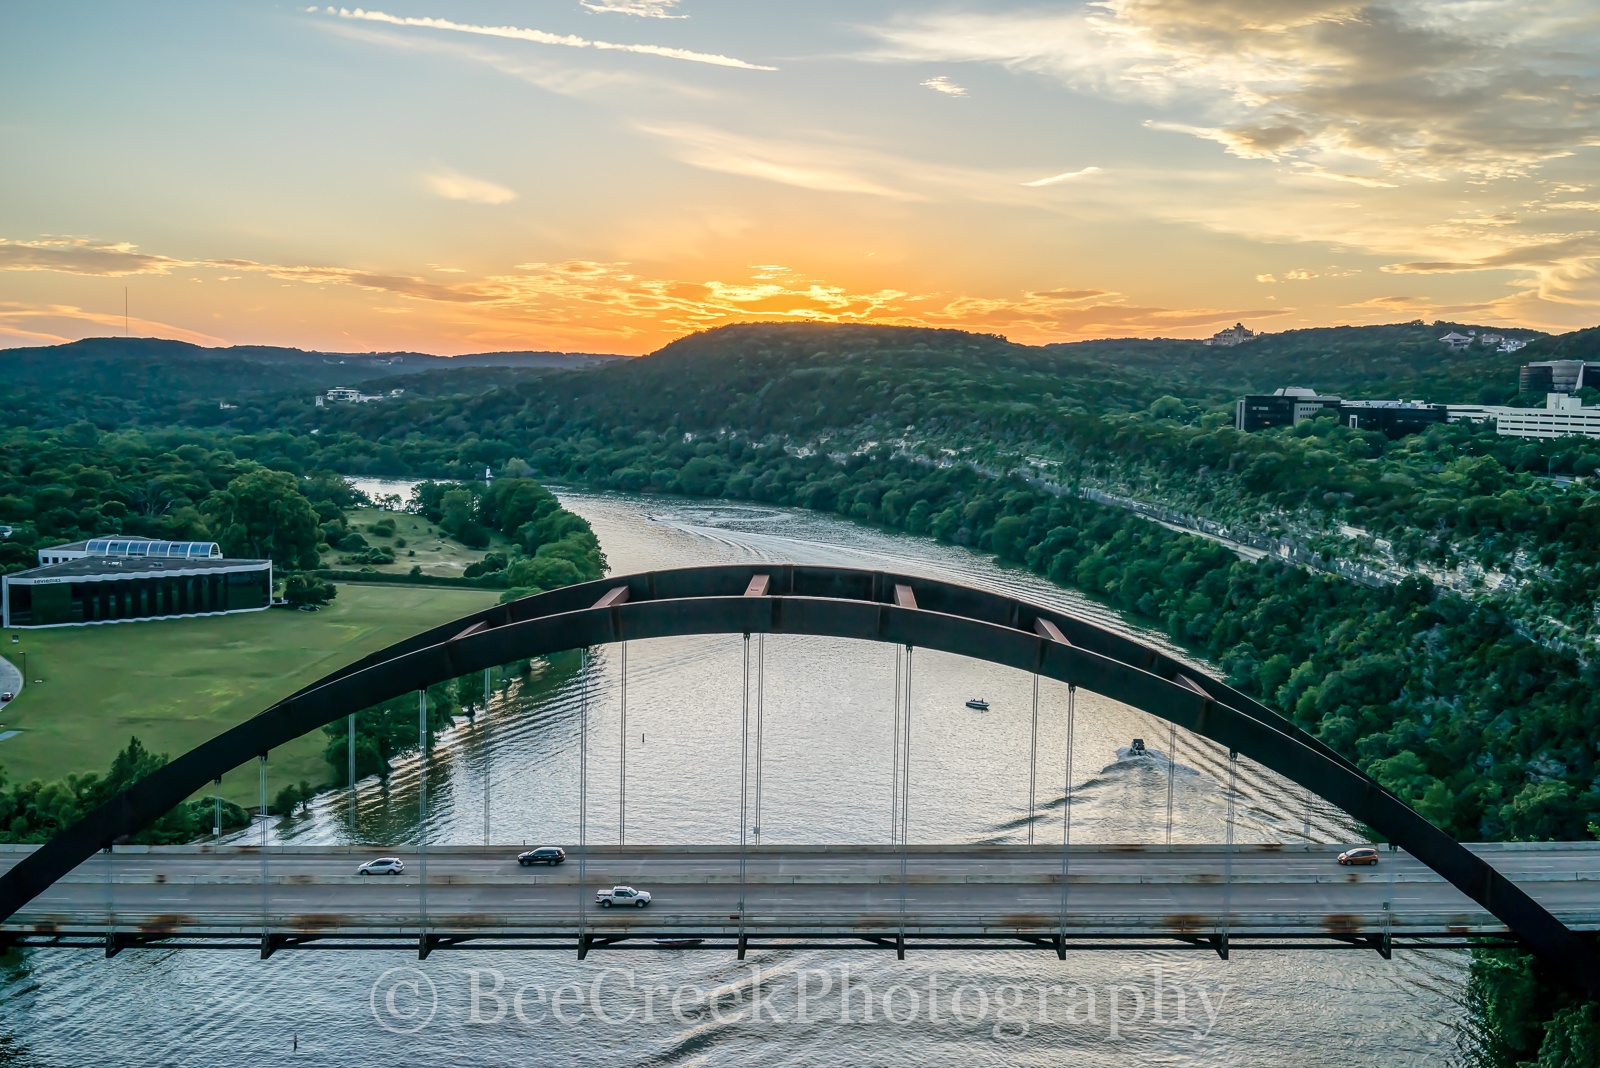 Austin 360 Bridge Sunset -  This is an aerial image of the Austin 360 bridge or Pennybacker bridge at sunset taken from above...